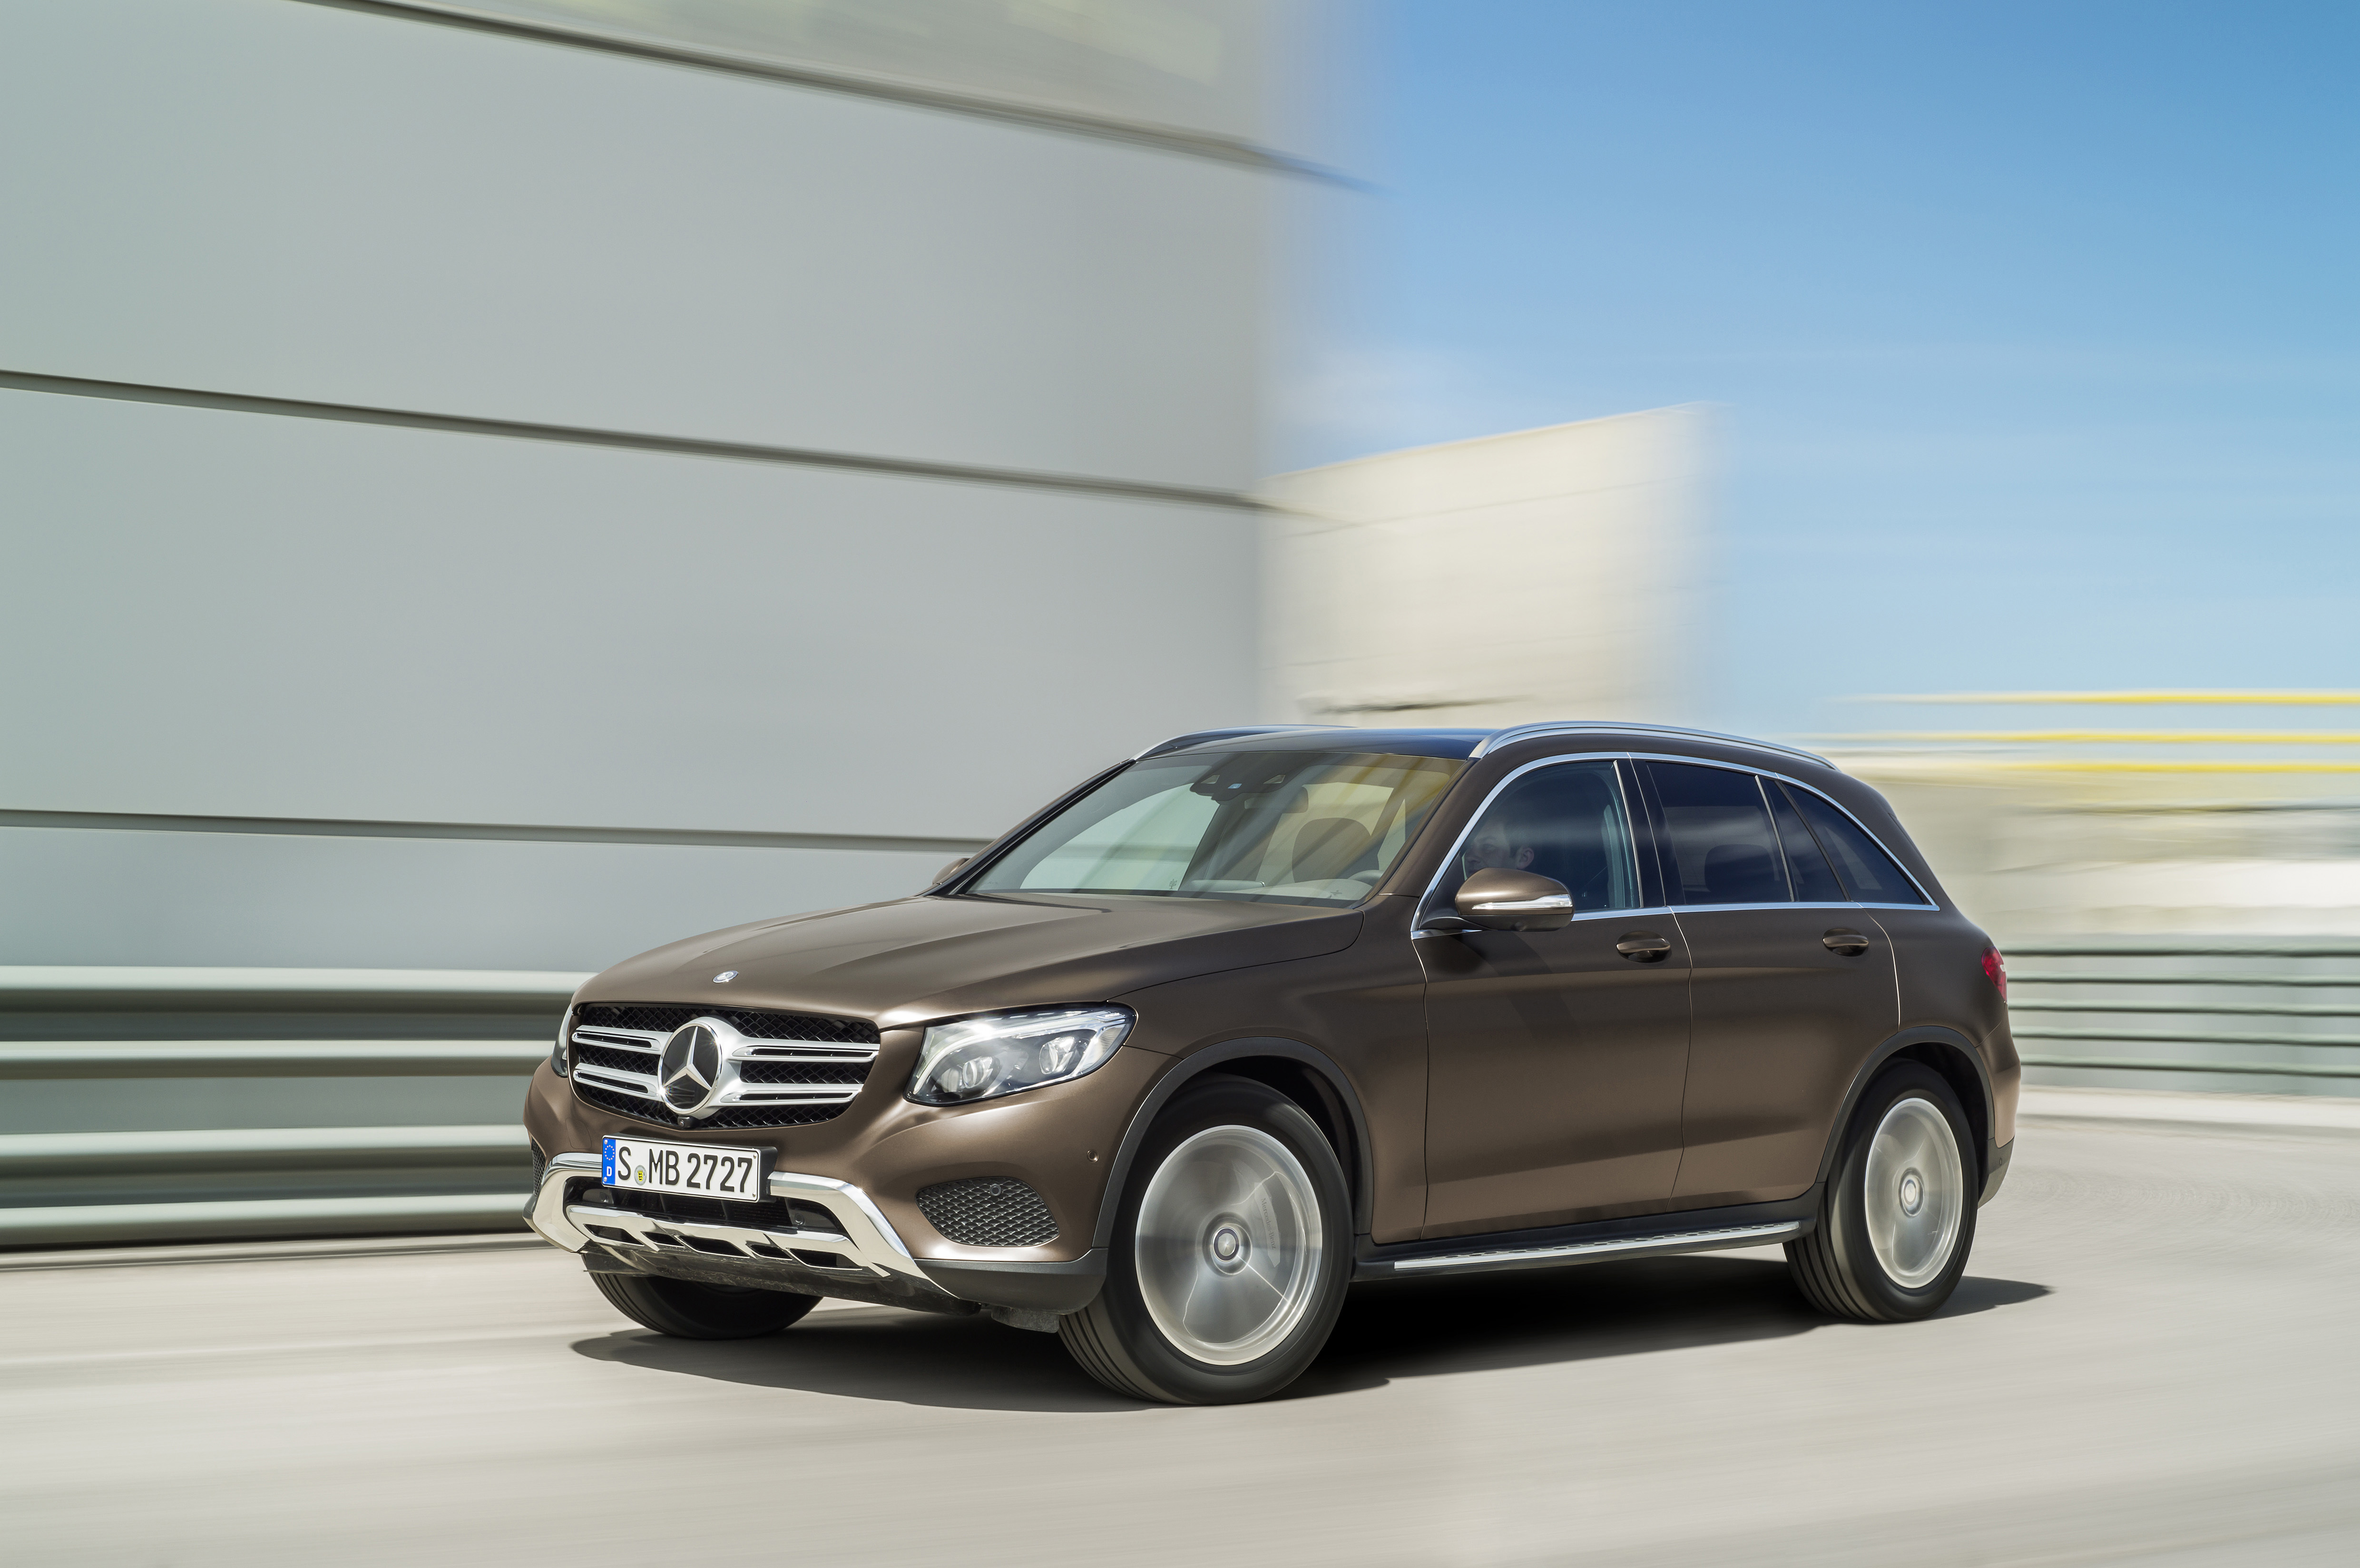 Mercedes GLC-Class Coupe (X253) exterior model